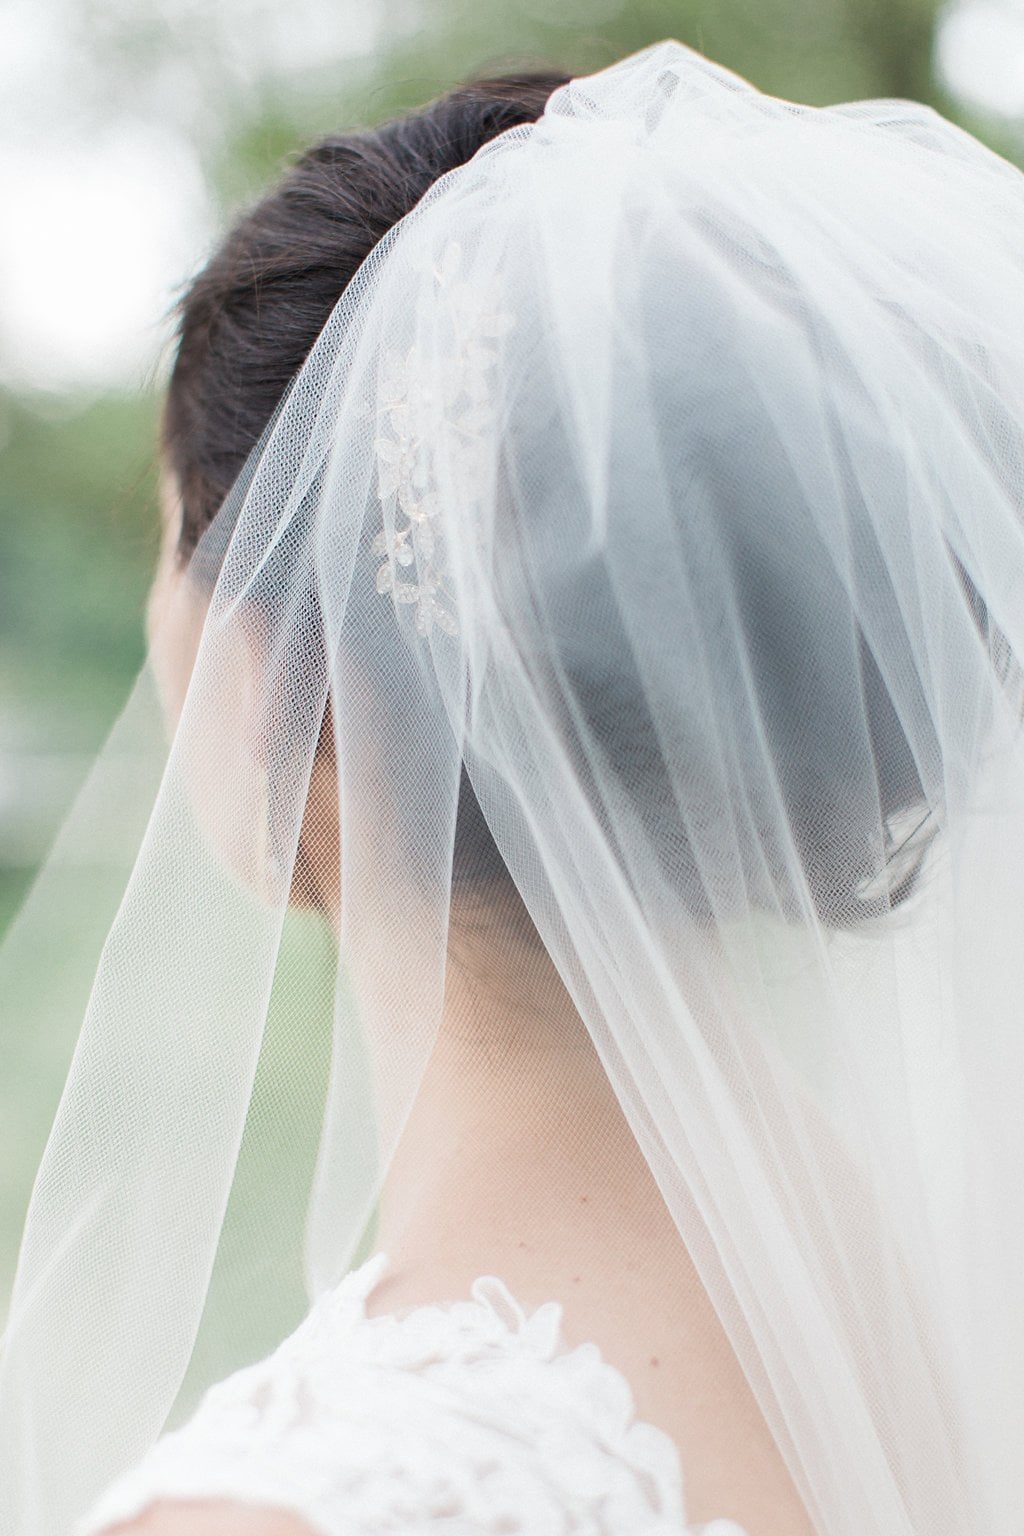 Close up of bride's veil from behind